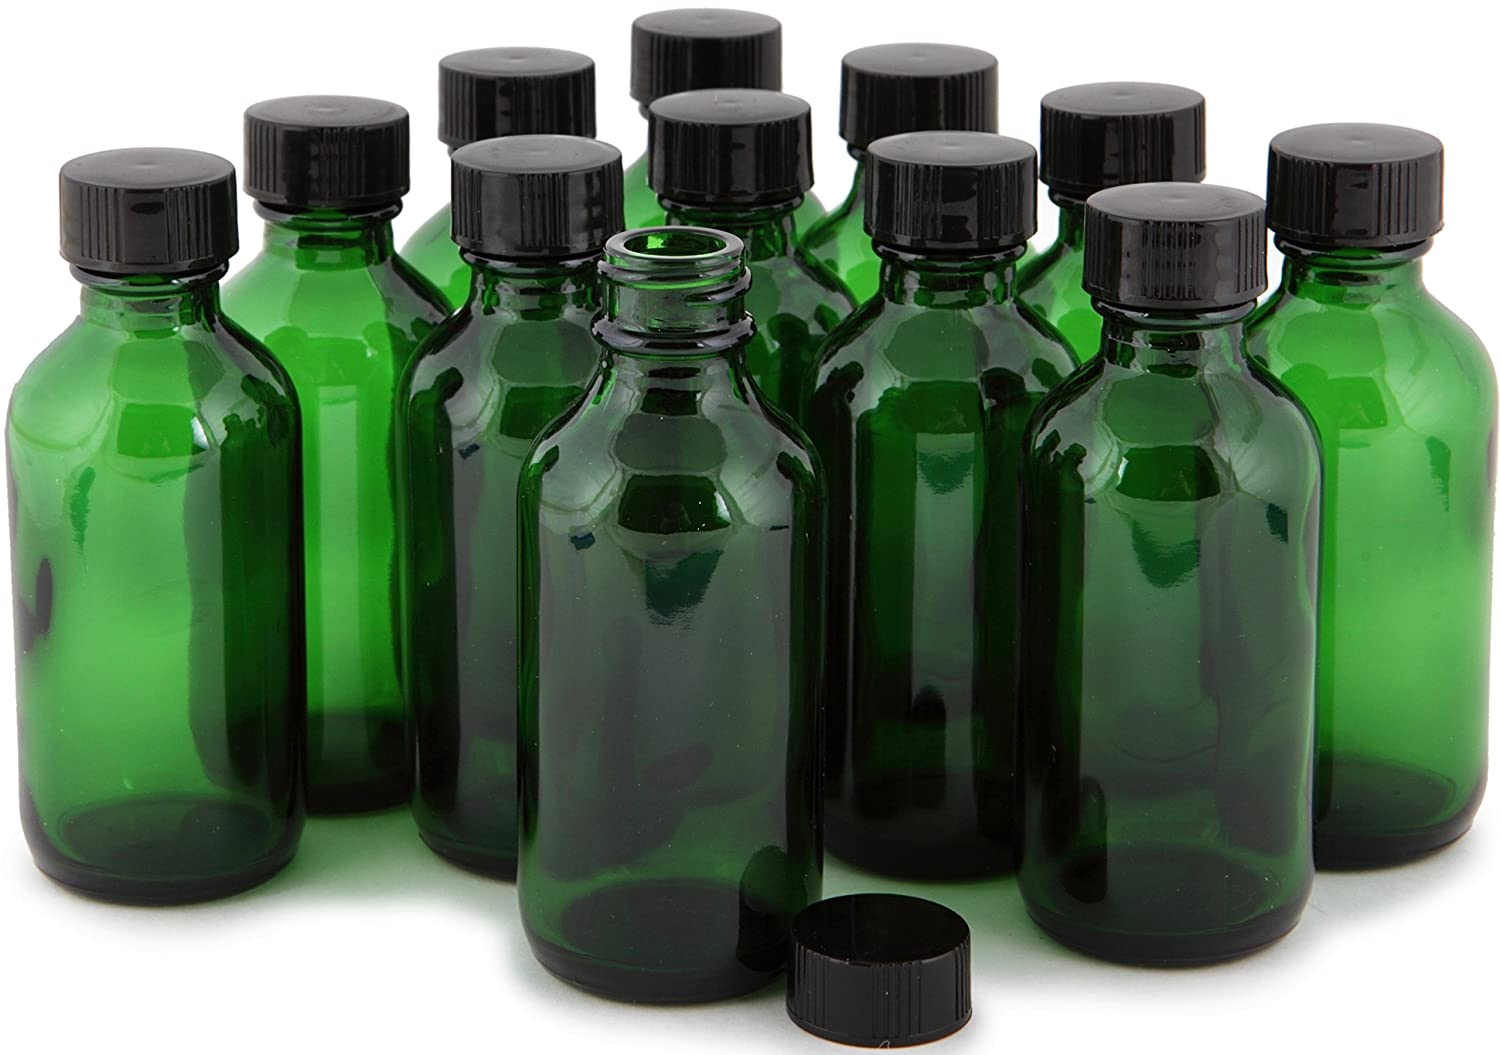 Vivaplex, 12, Green, 2 oz Glass Bottles, with Lids